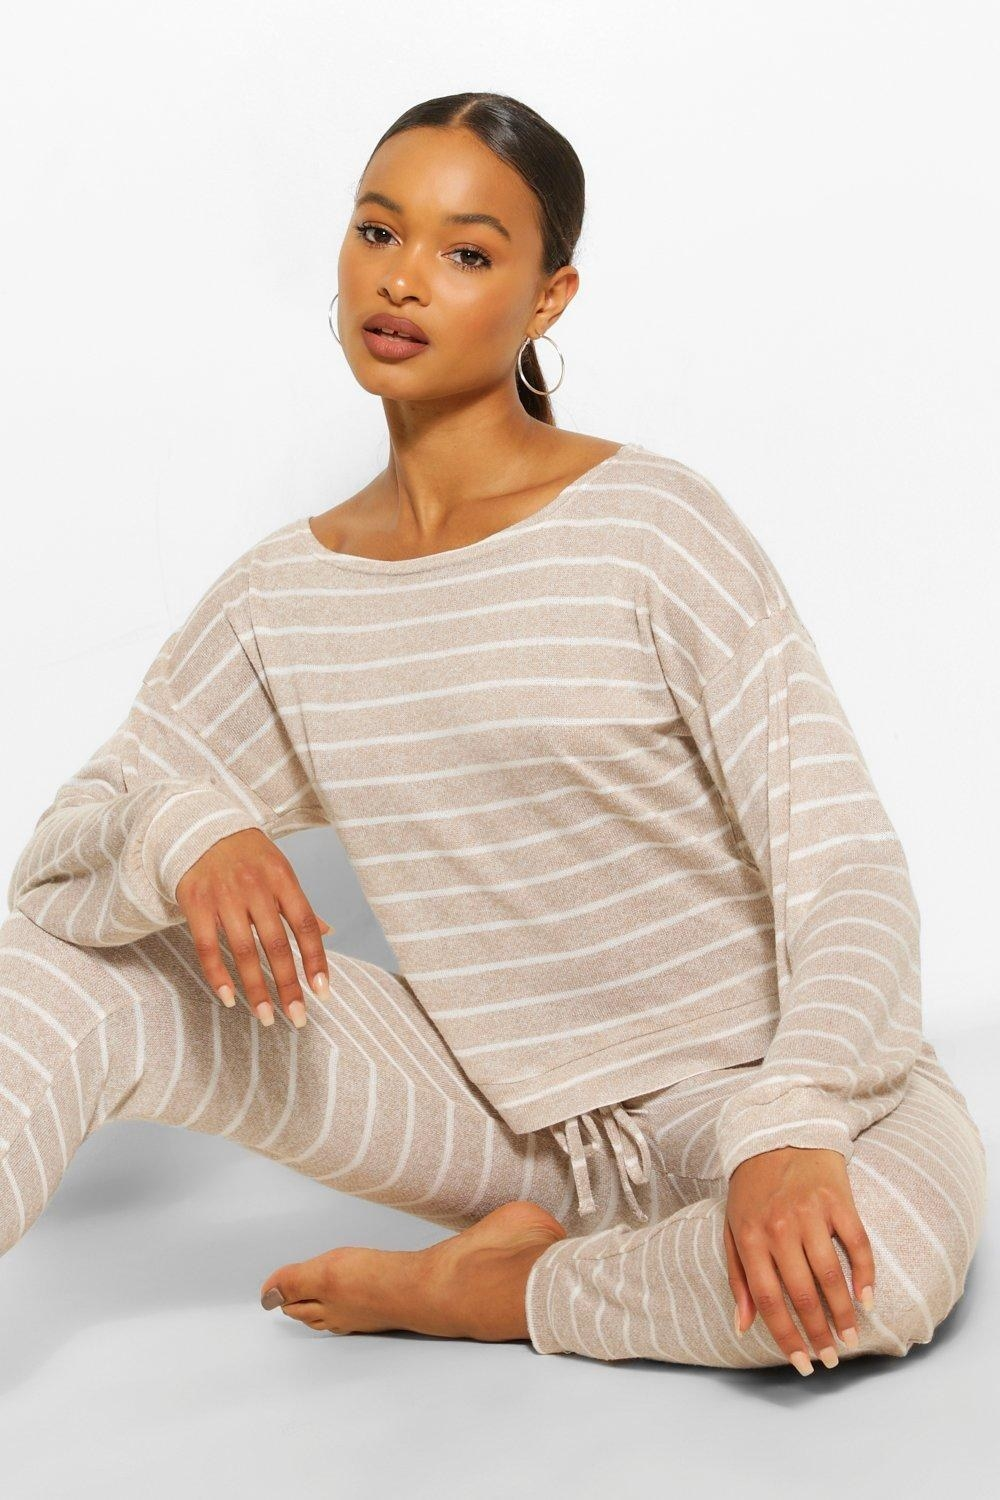 a model sitting cross legged in tan sweatpants with white vertical stripes and a matching sweatshirt